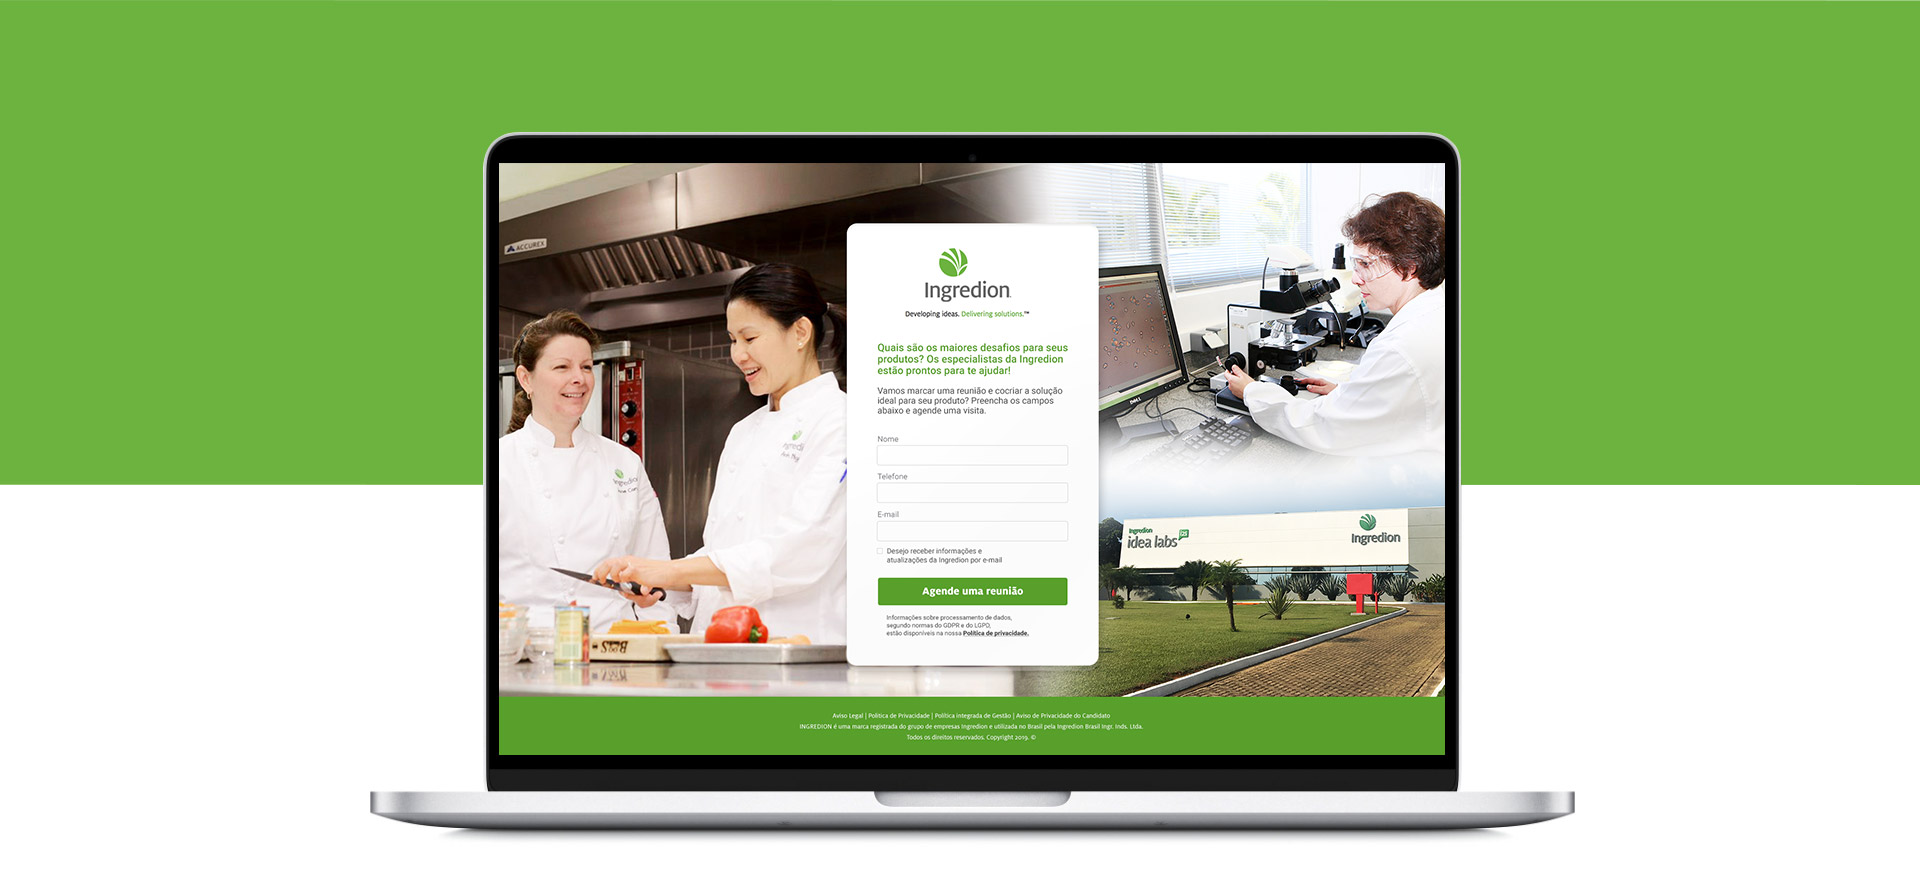 Landing Page para Inbound Marketing Ingredion